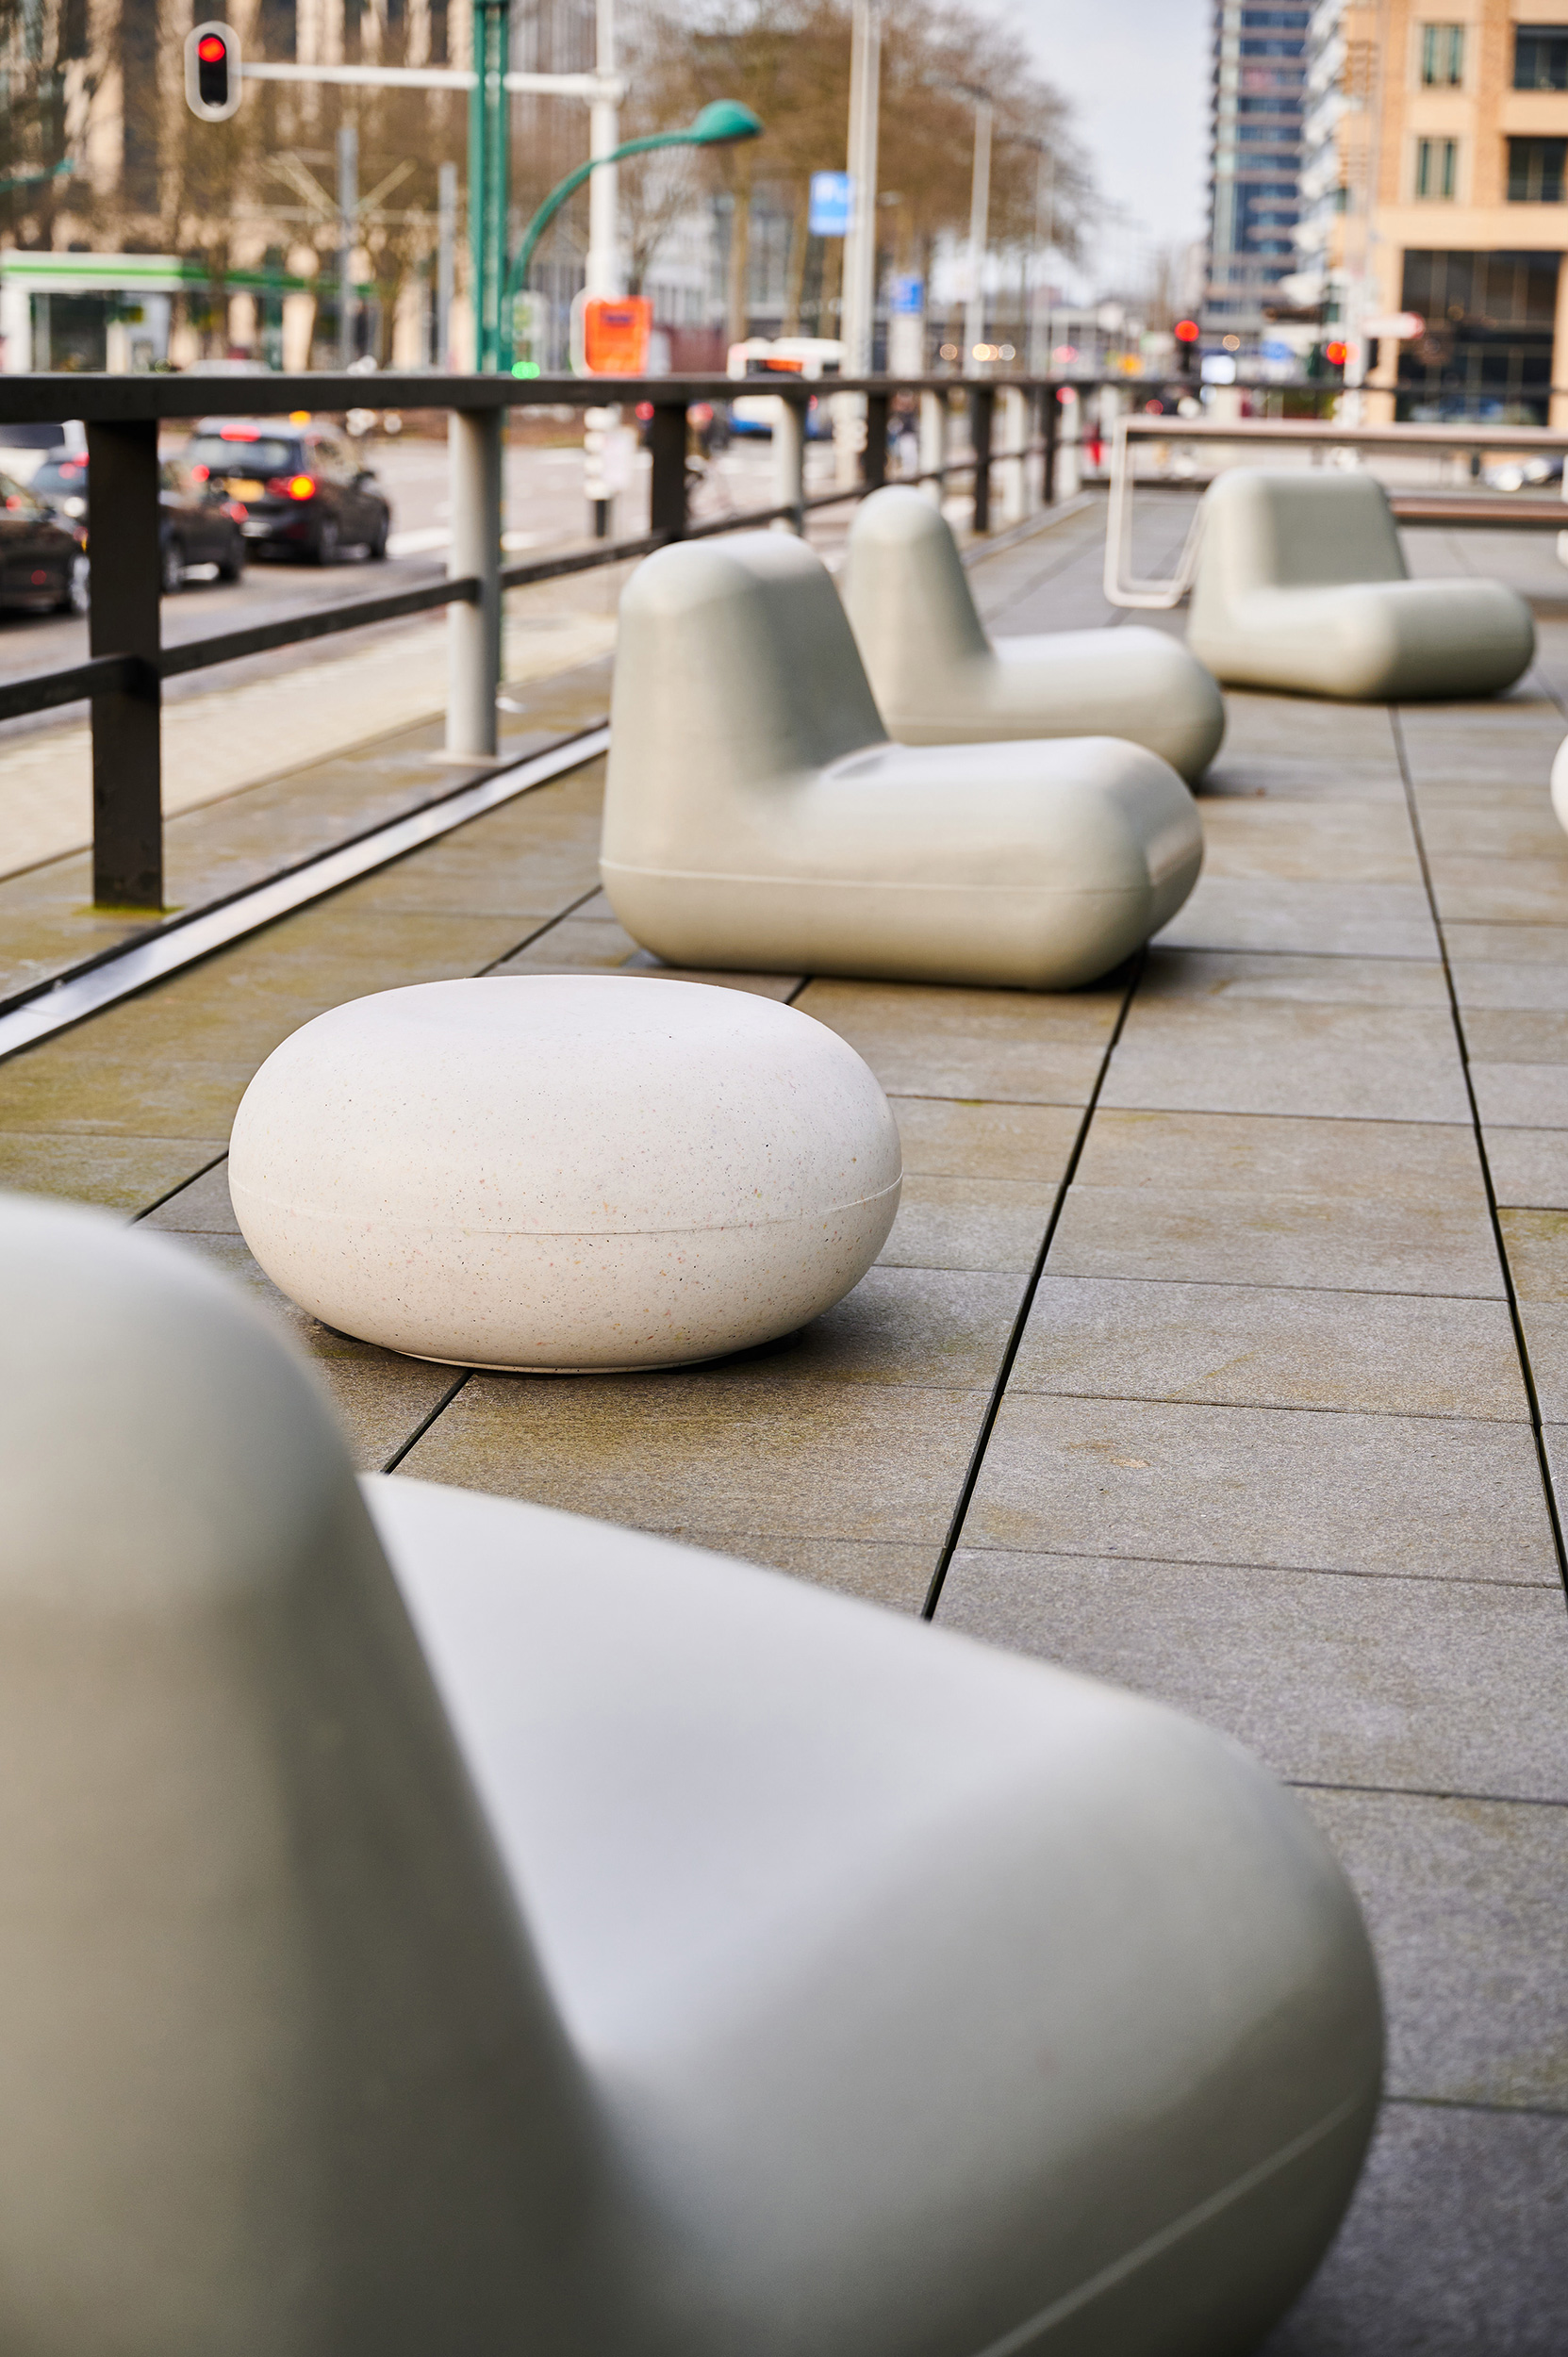 Plastic chairs and poufs in recovered plastic from packaging waste